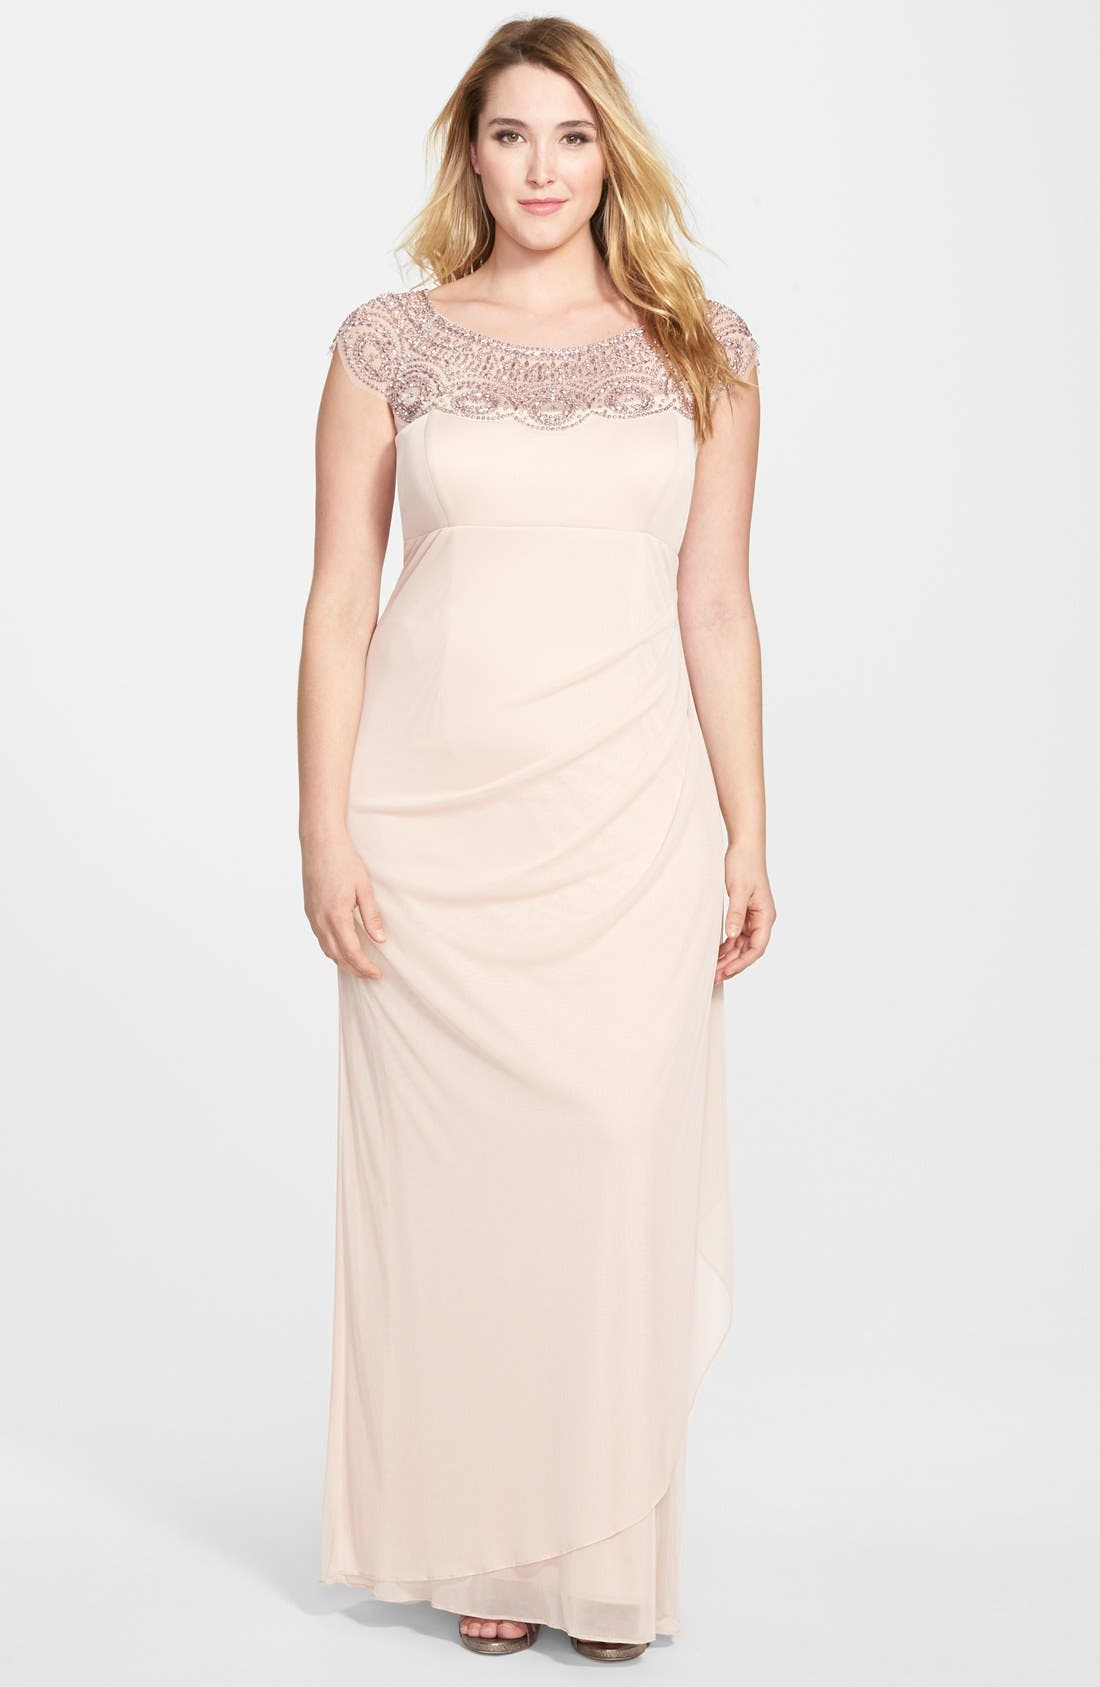 Alternate Image 1 Selected - Xscape Beaded Yoke Mesh Gown (Plus Size)